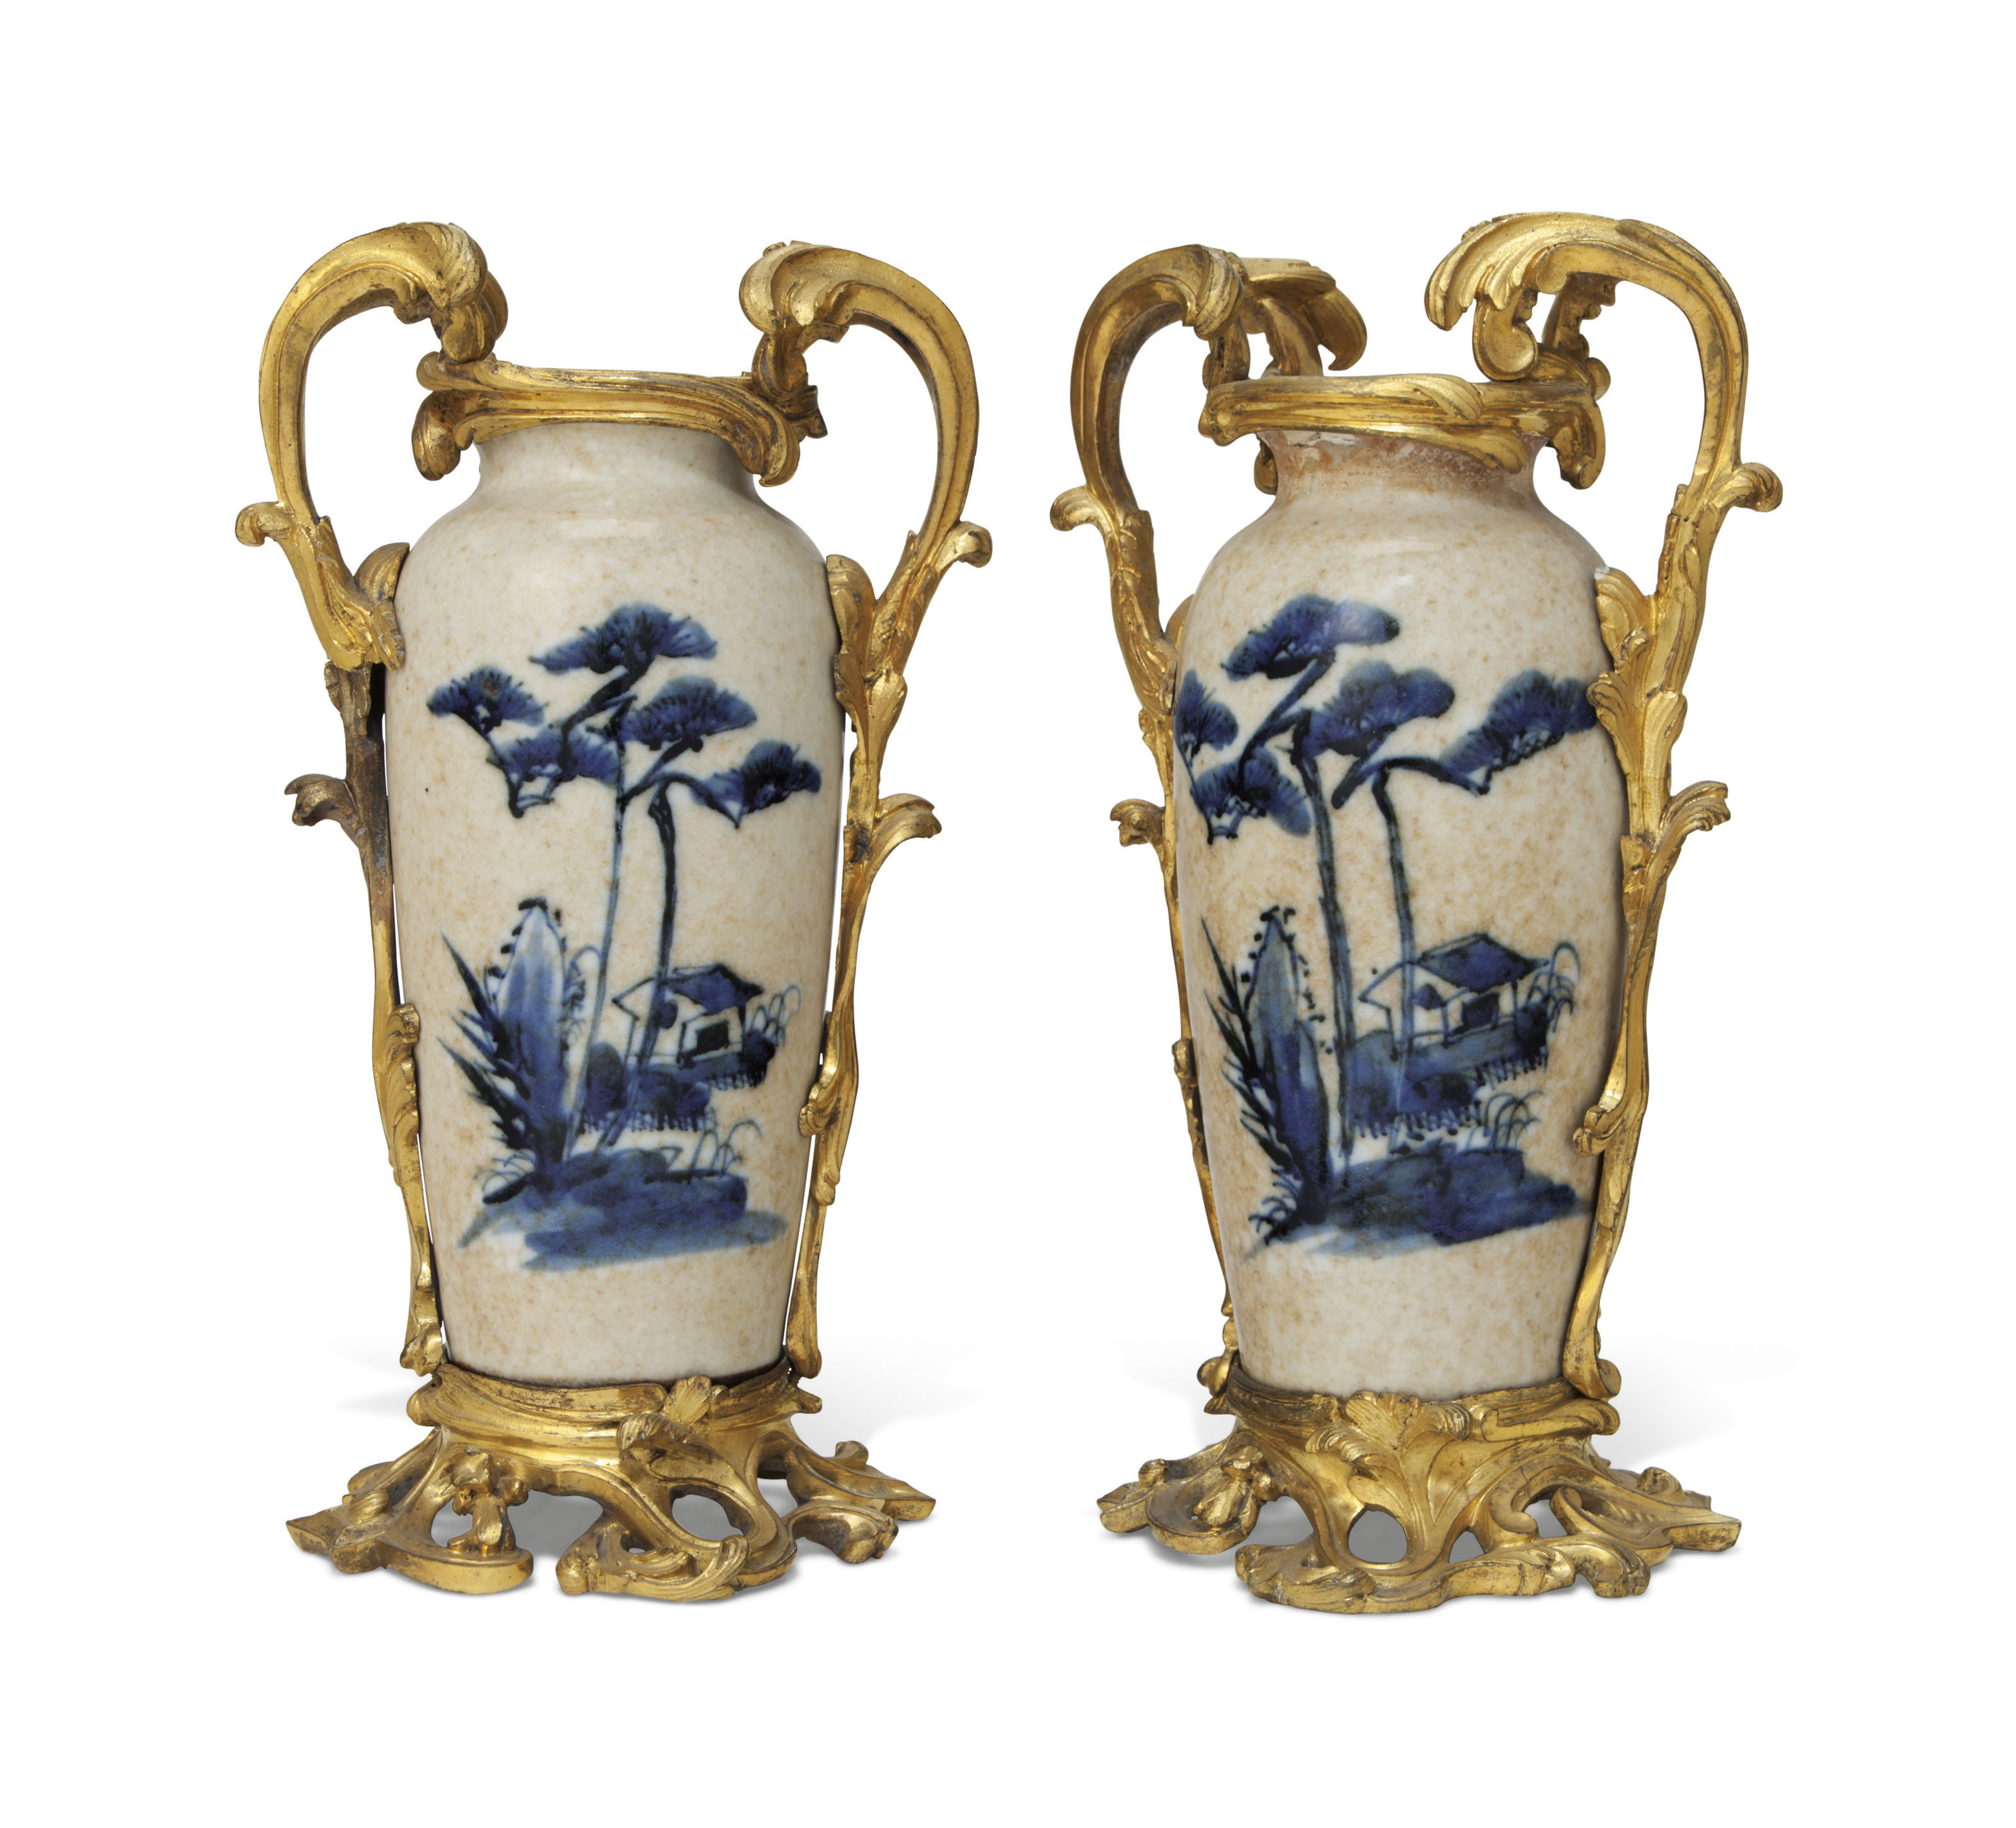 A PAIR OF FRENCH ORMOLU-MOUNTED CHINESE PORCELAIN VASES